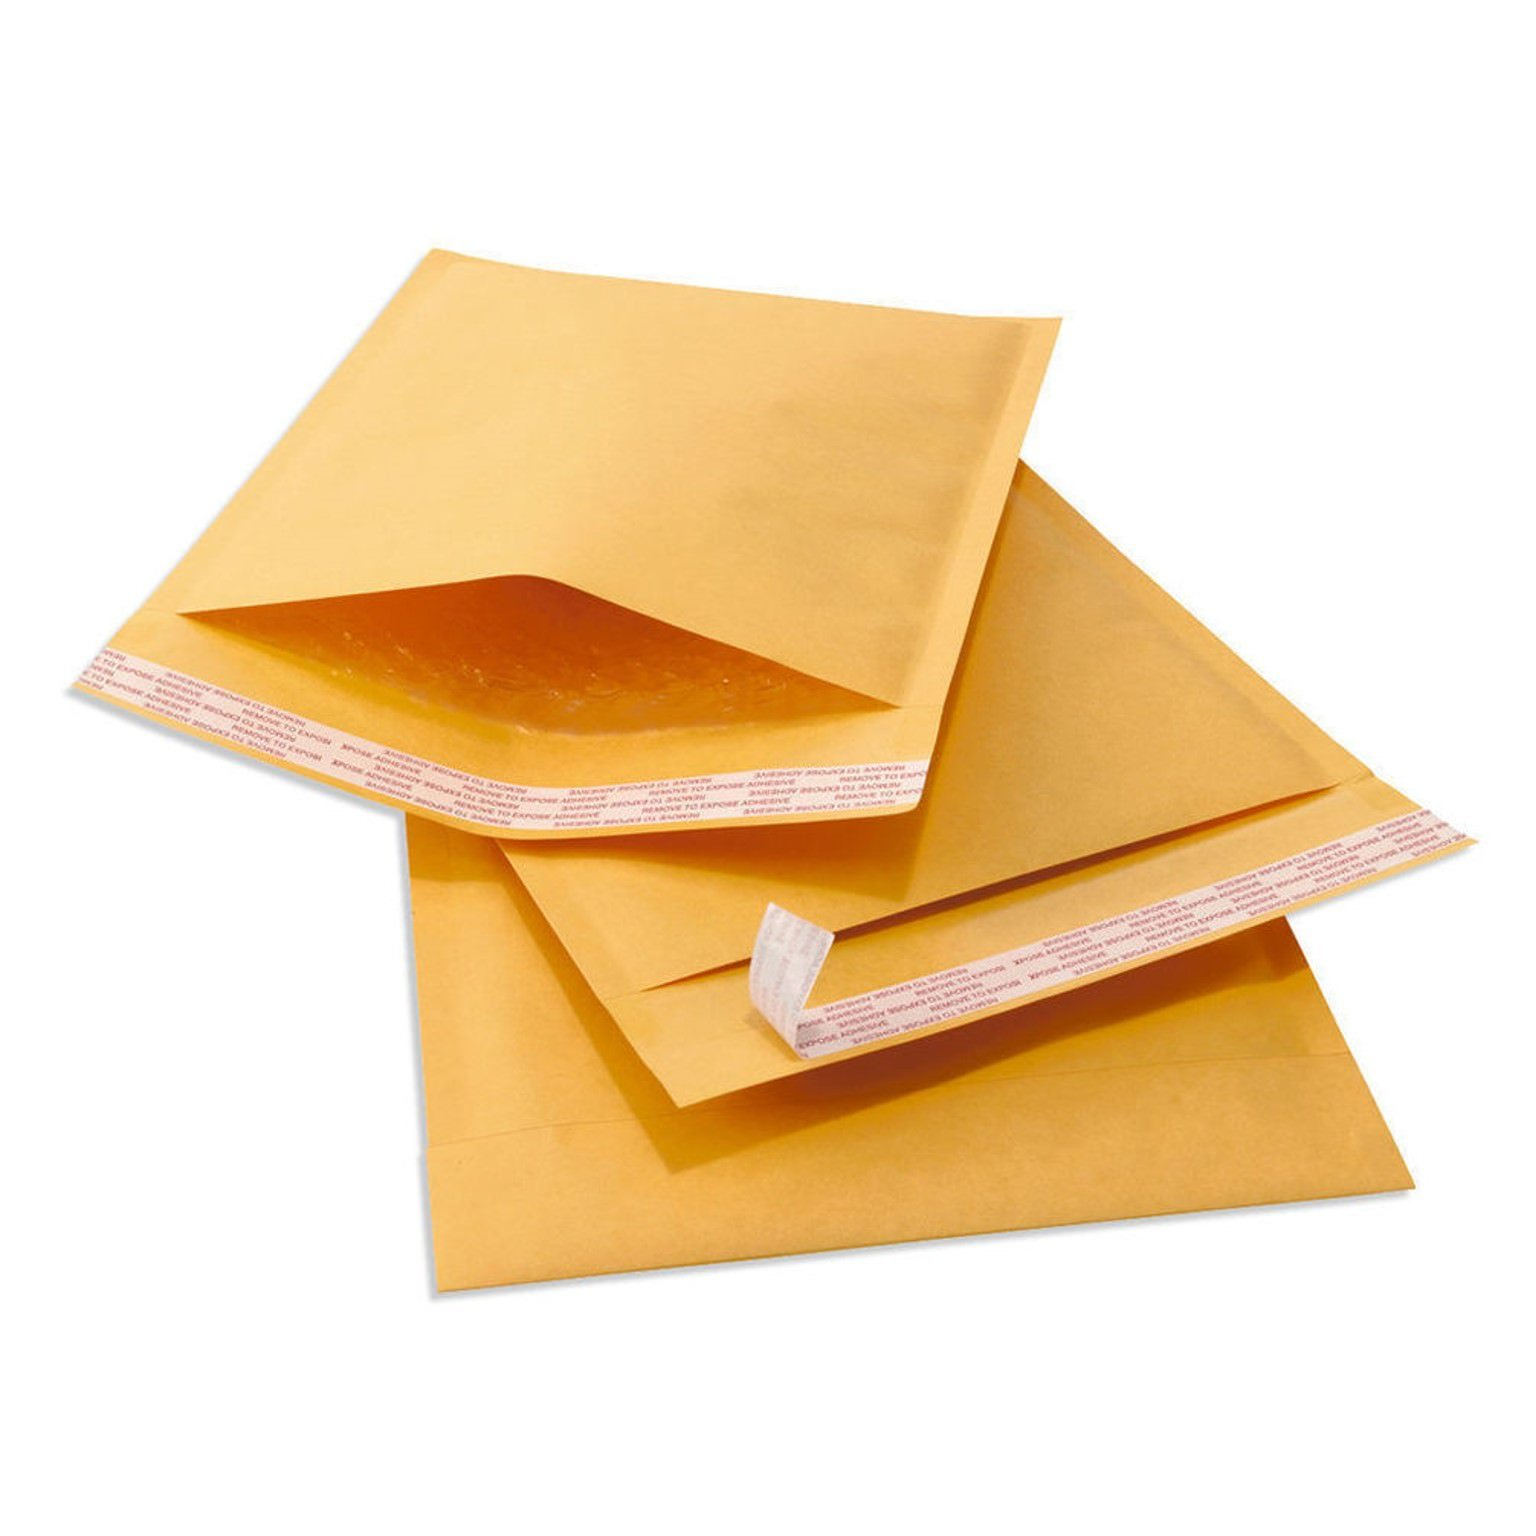 OfficeKit Kraft Bubble Mailers #0 6X10 Inches Shipping Padded Envelopes Self Seal Cushioned Mailing Envelope Bags 100 PACK by OfficeKit (Image #2)